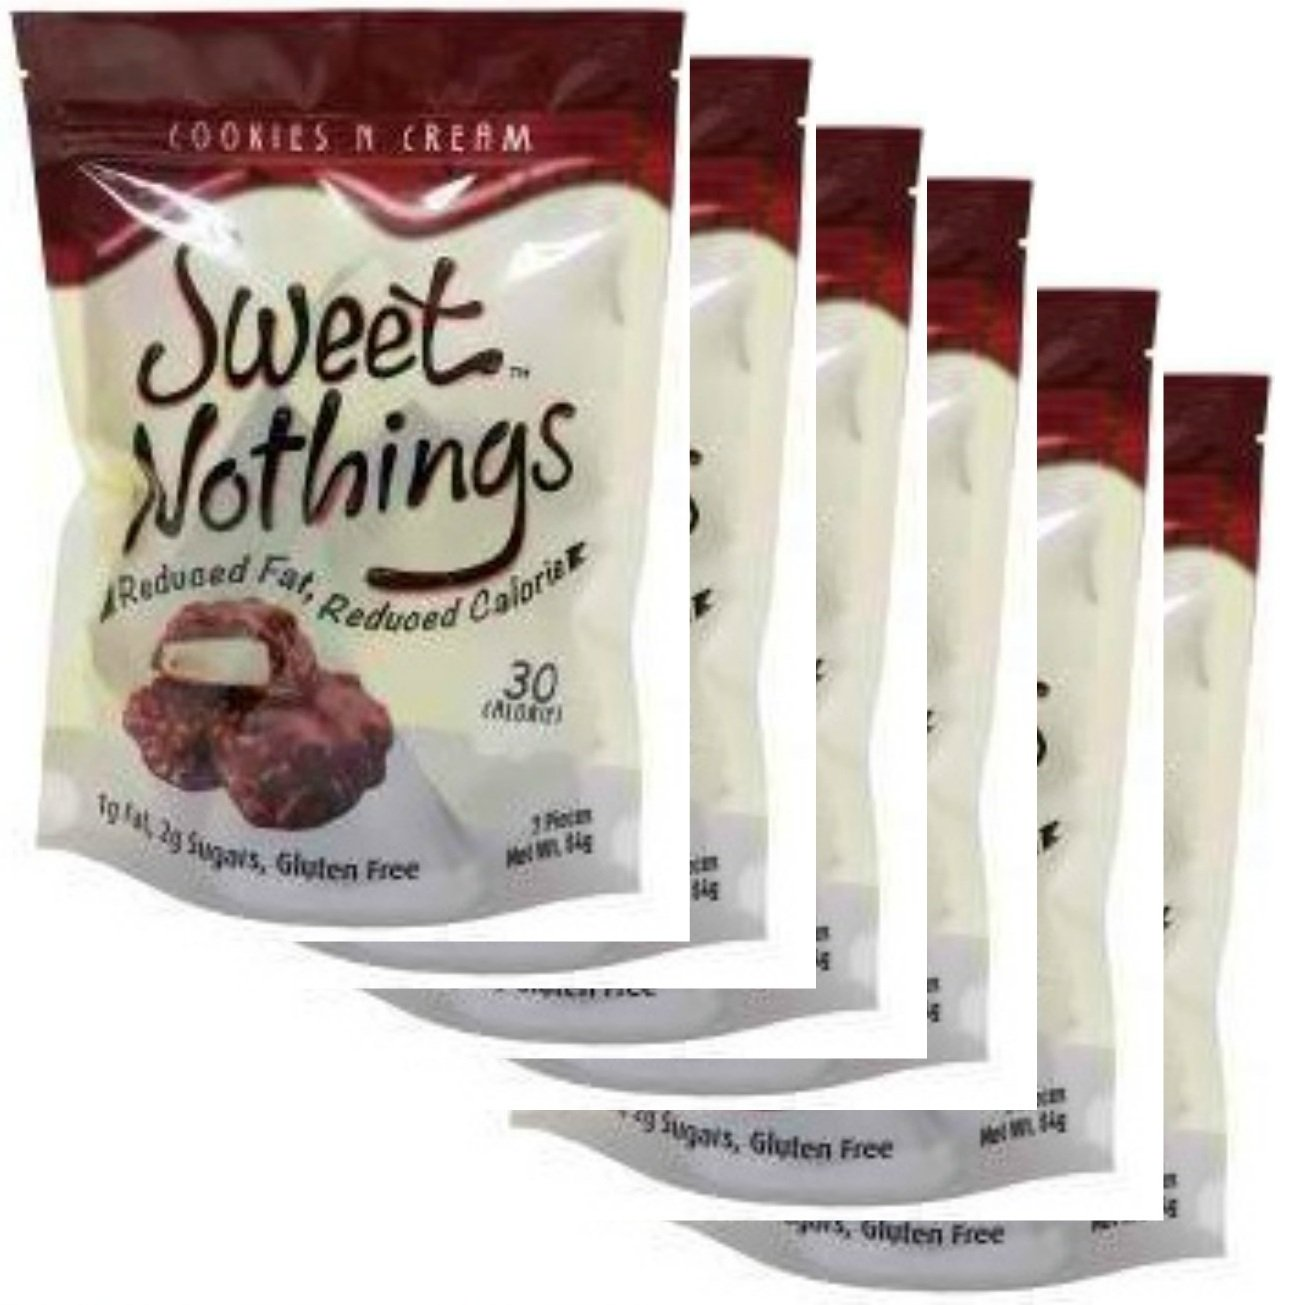 HealthSmart Sweet Nothings Candies - Cookies n Cream